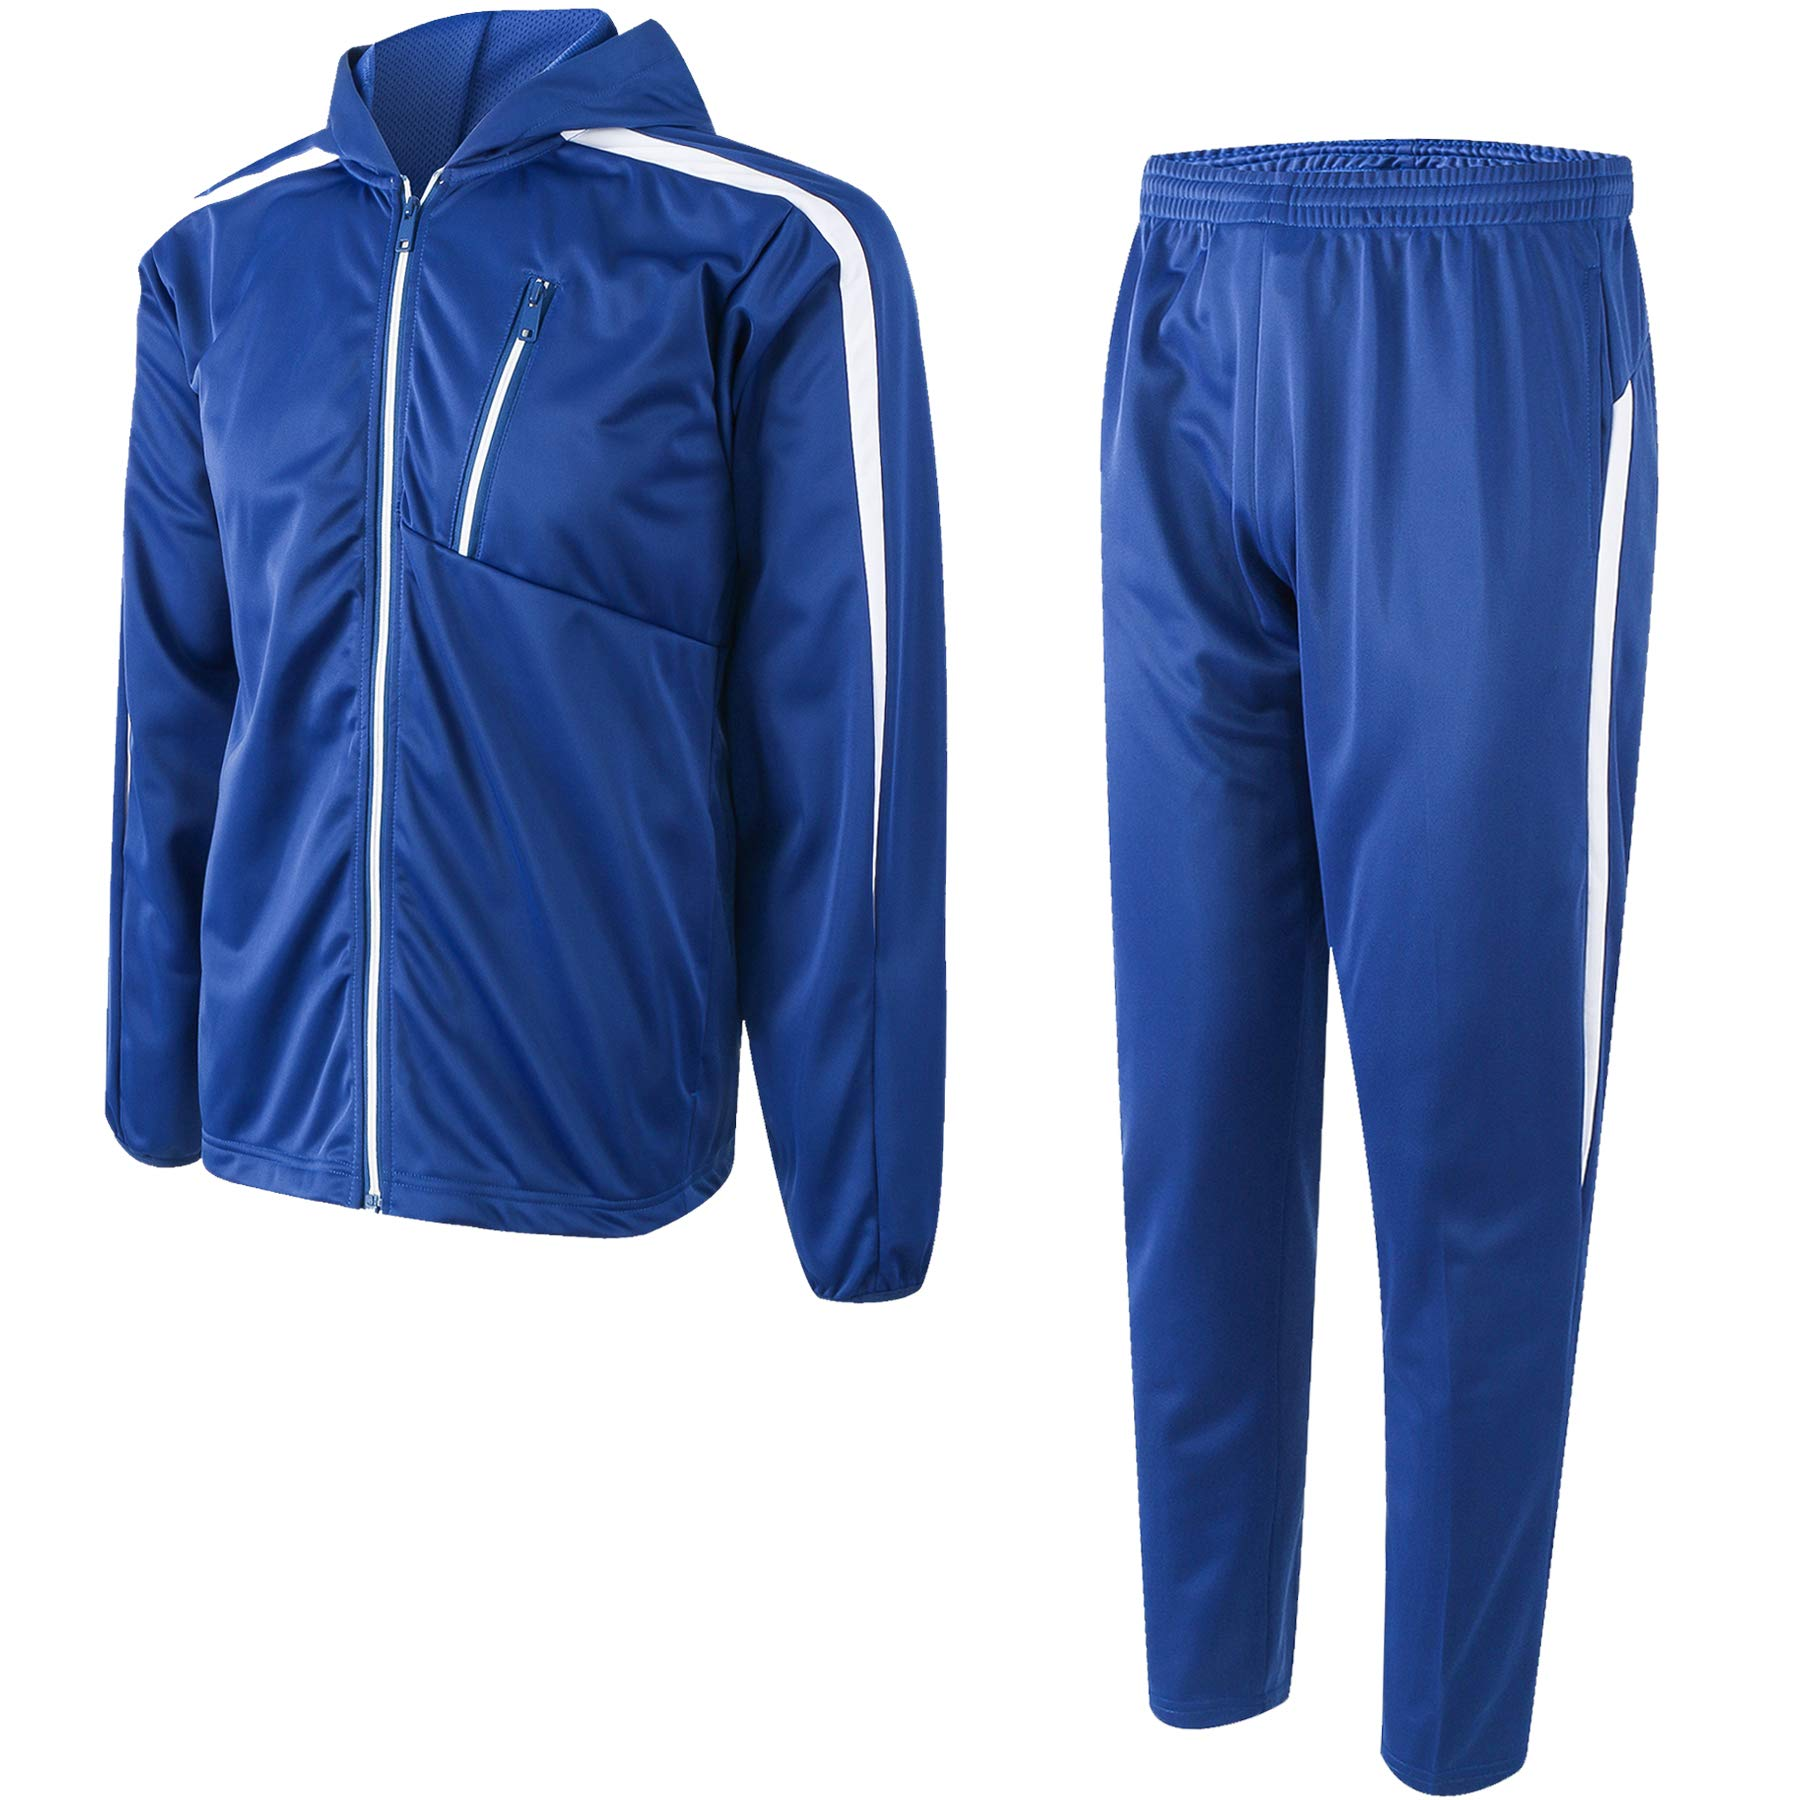 URBEX Mens Athletic 2 Piece Tracksuit Set Hooded Jacket and Sport Pants Long Sleeve Jacket Casual Loose Sweatshirt Drawstring Hoodie-Blu-XL by URBEX